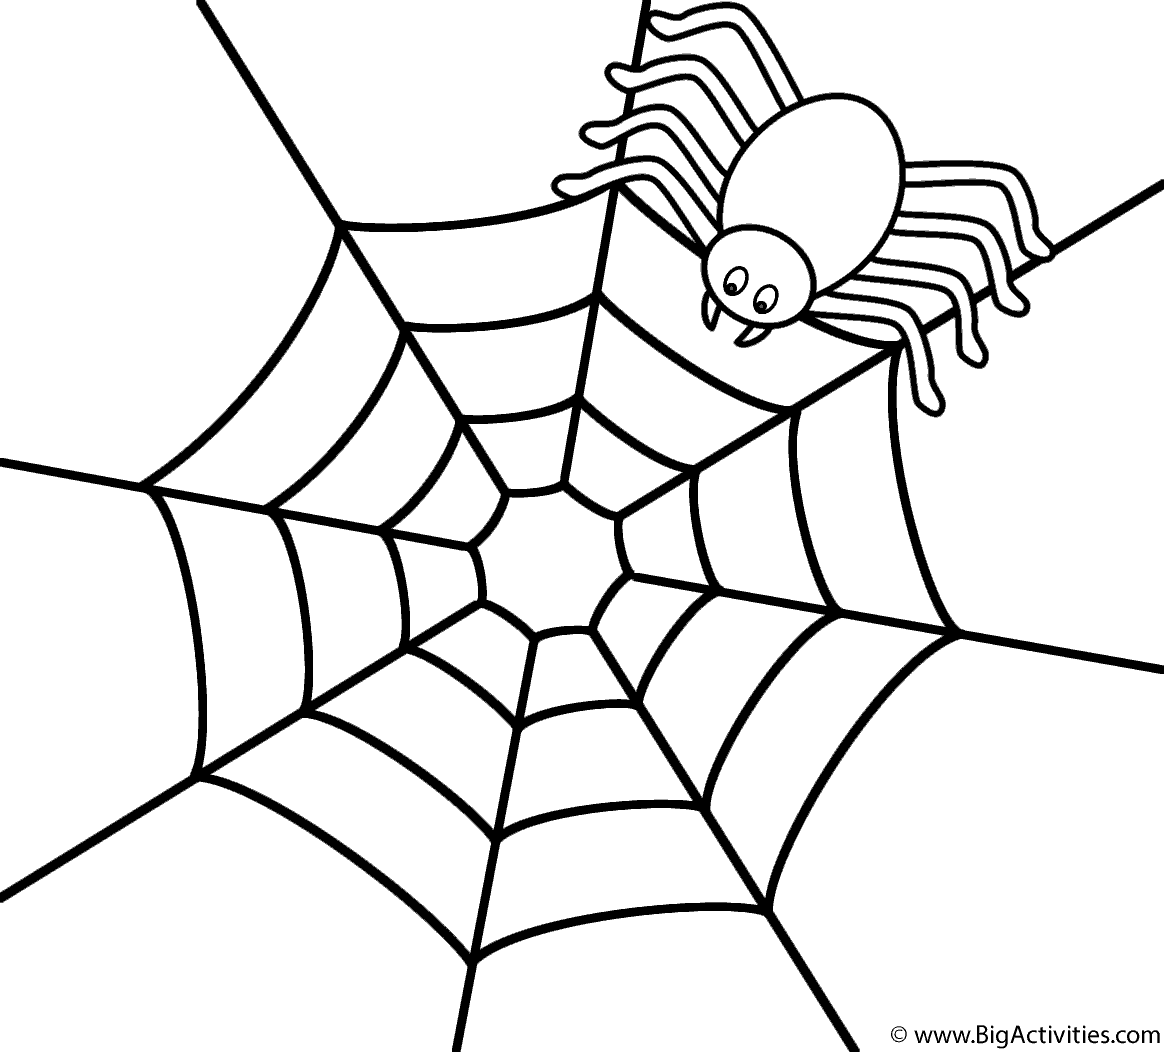 spider web coloring page spider on the top of web coloring page halloween coloring spider web page